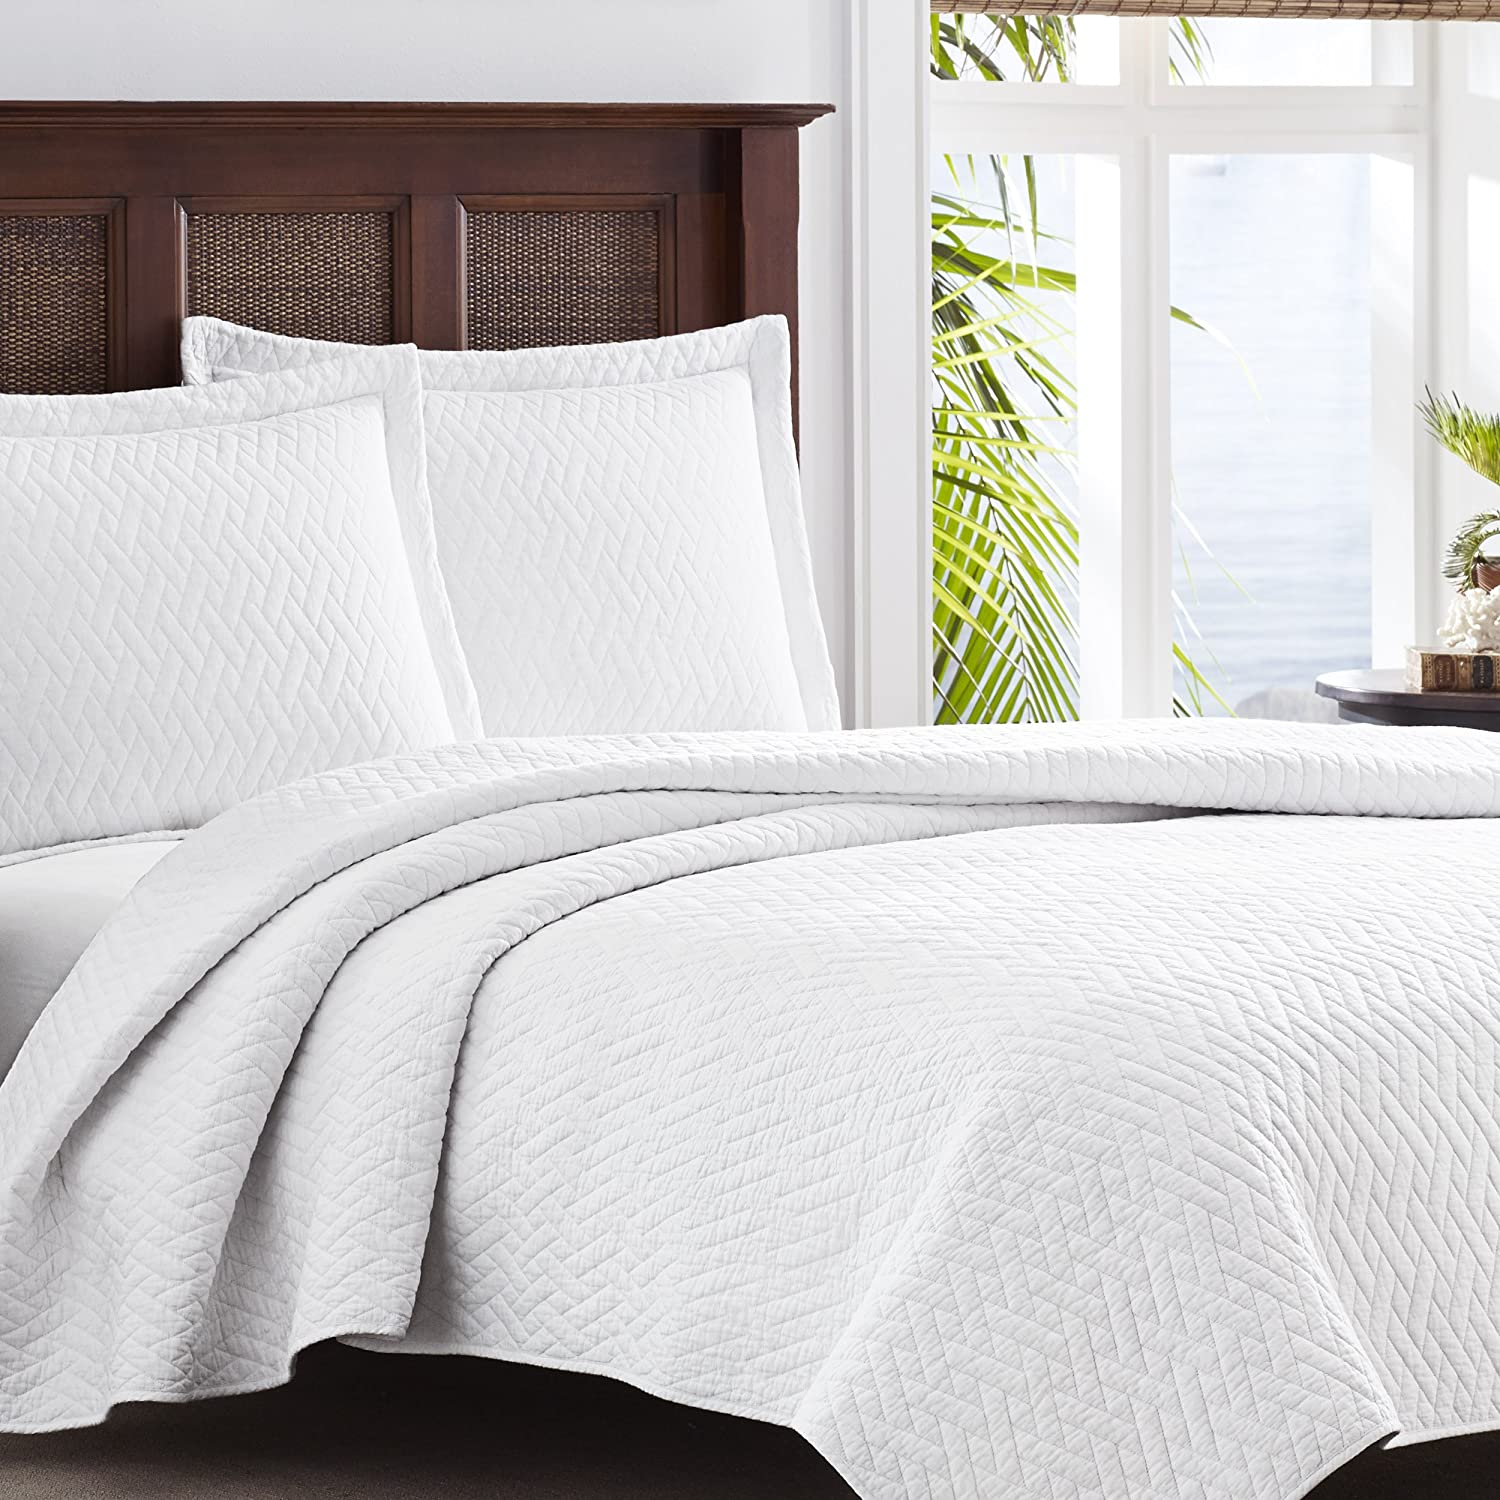 amazoncom tommy bahama white chevron quilt set king white home kitchen. amazoncom tommy bahama white chevron quilt set king white